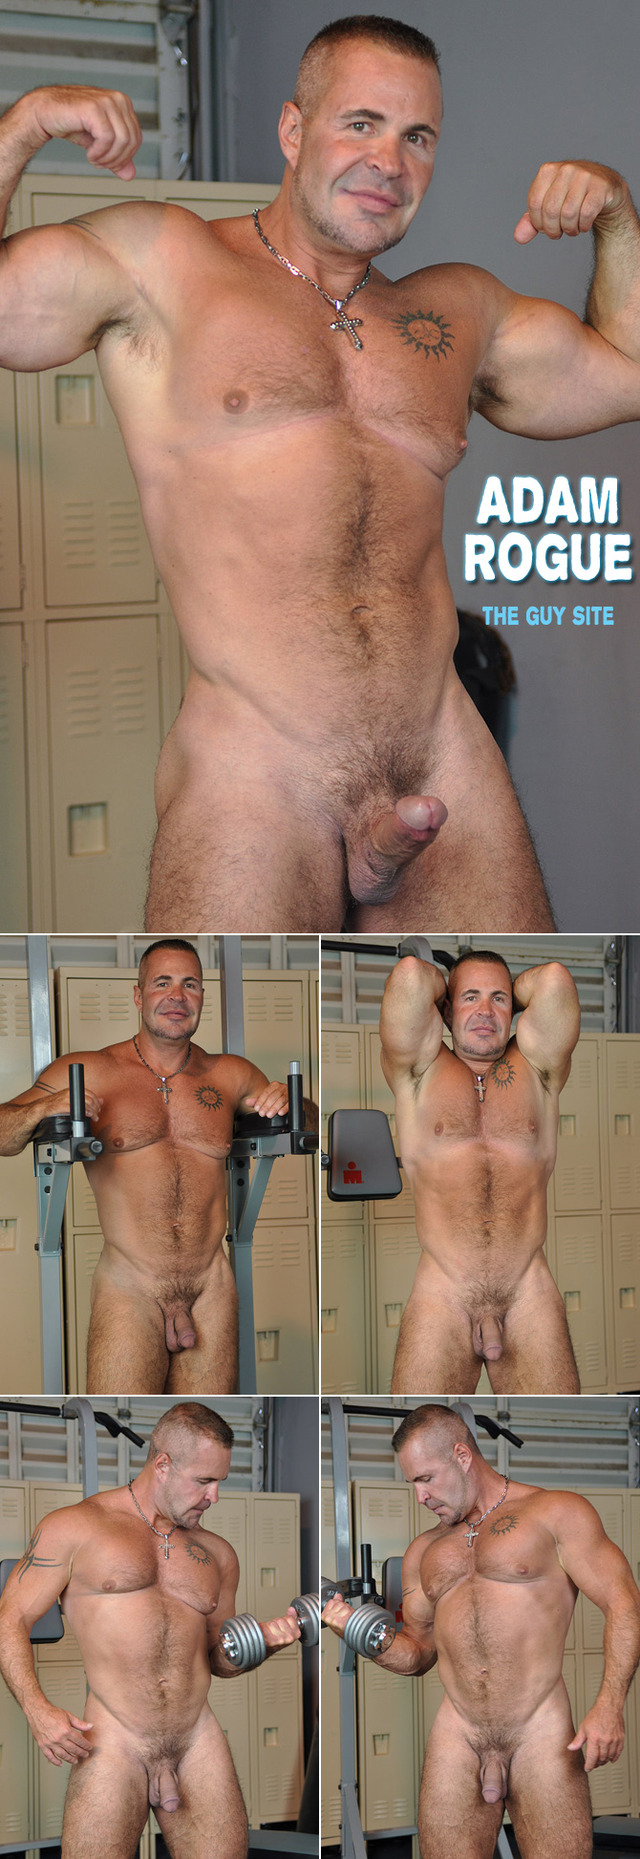 all gay porn Pictures adam beefy daddy collages sexy rogue theguysite